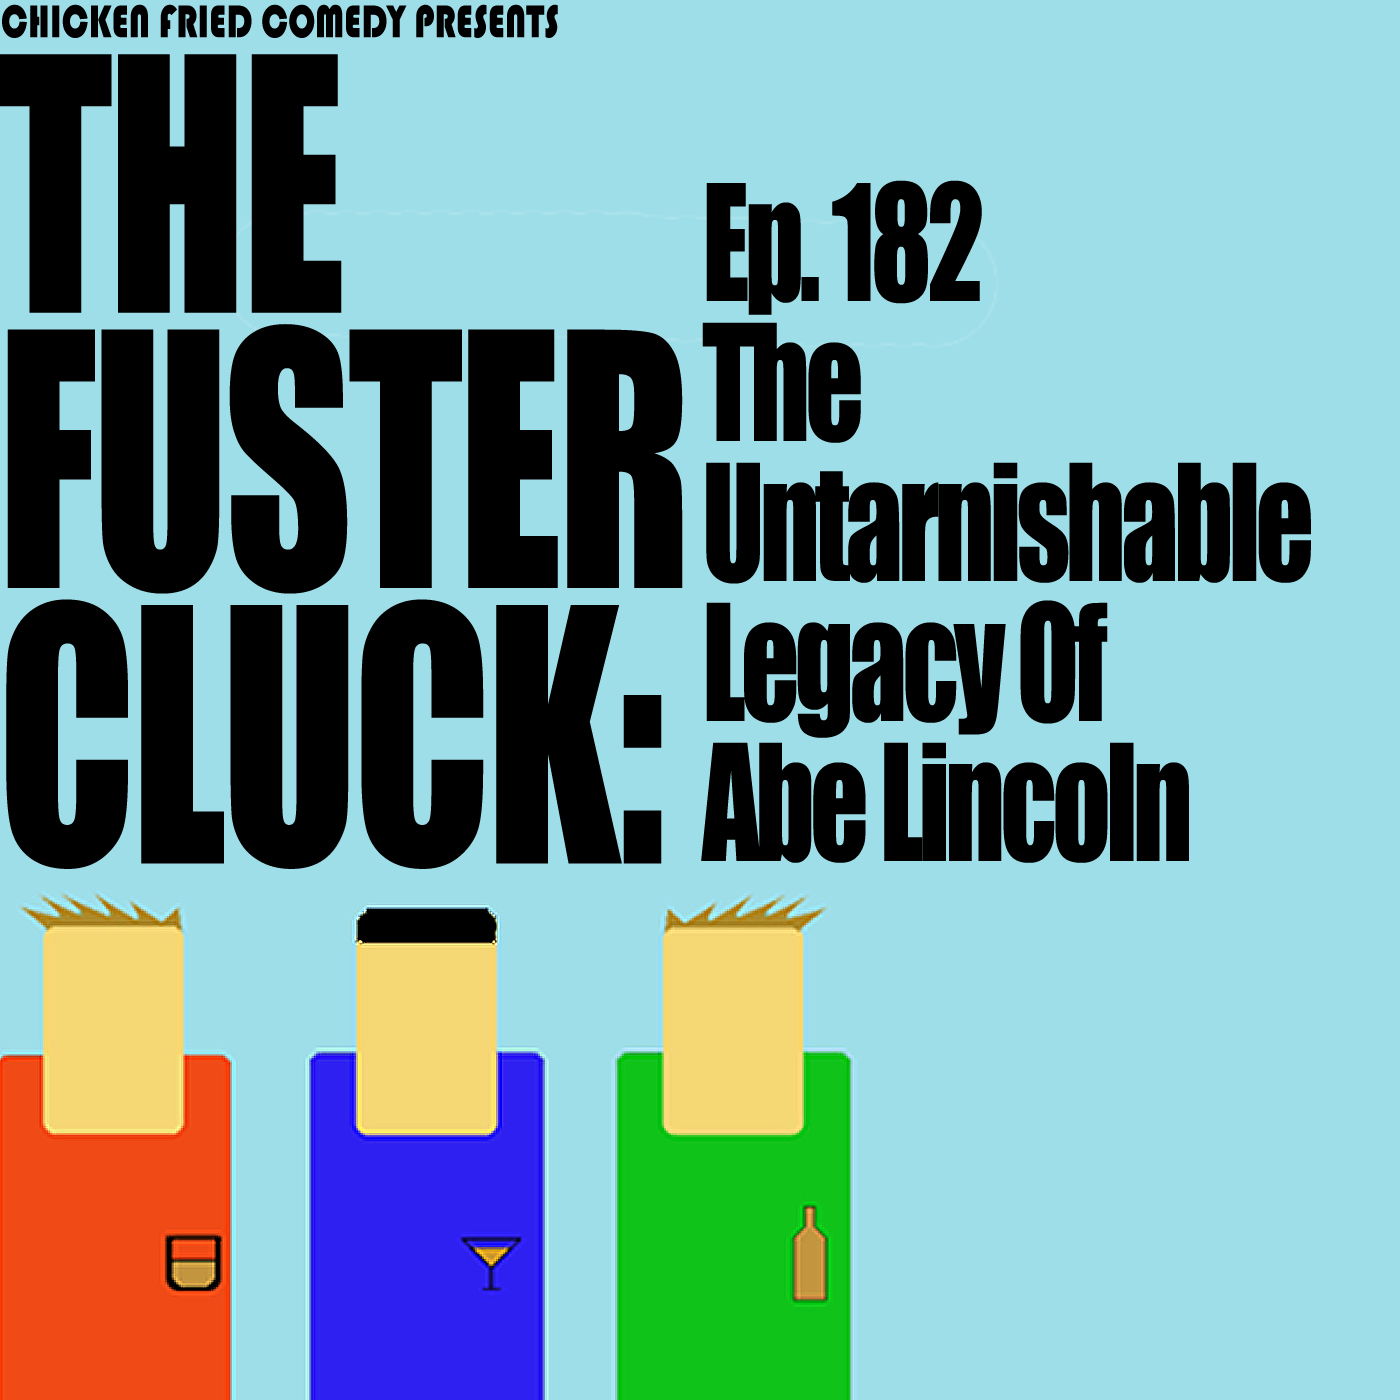 The Fustercluck Ep 182: The Untarnishable Legacy of Abe Lincoln